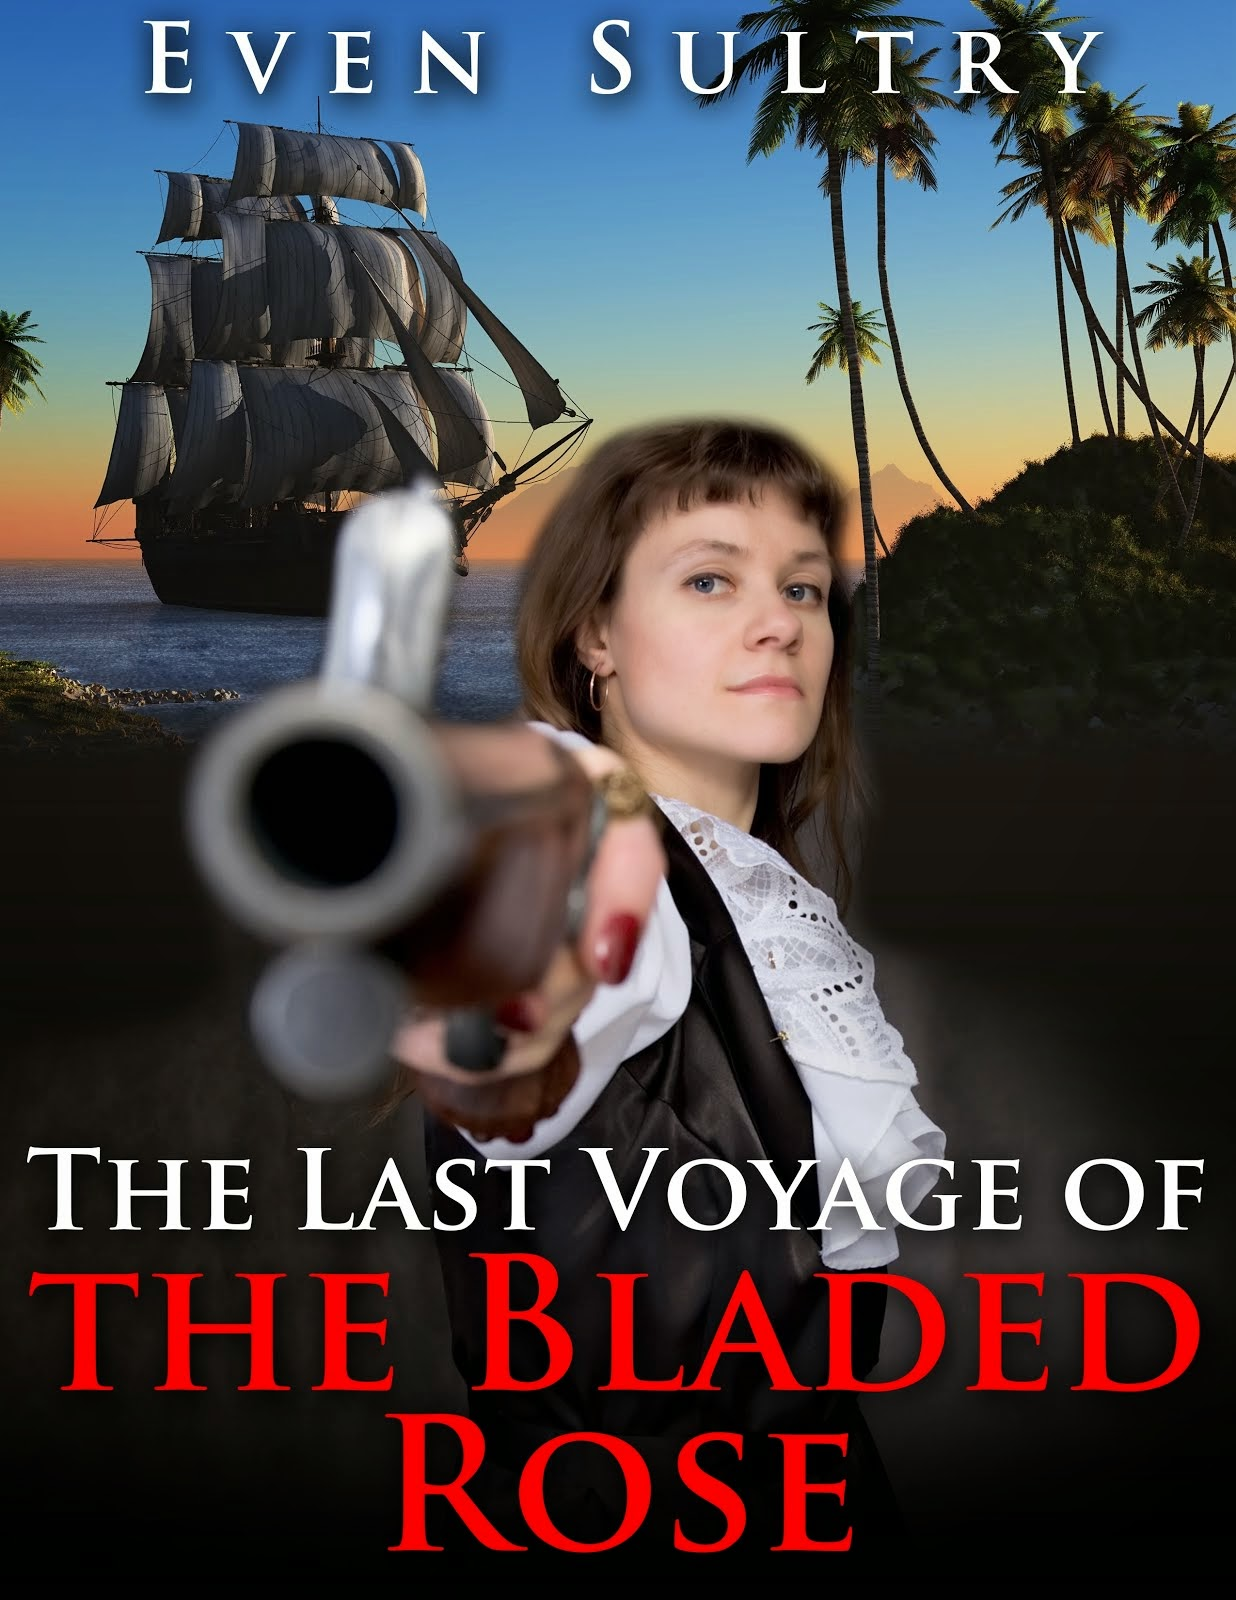 The Last Voyage of the Bladed Rose